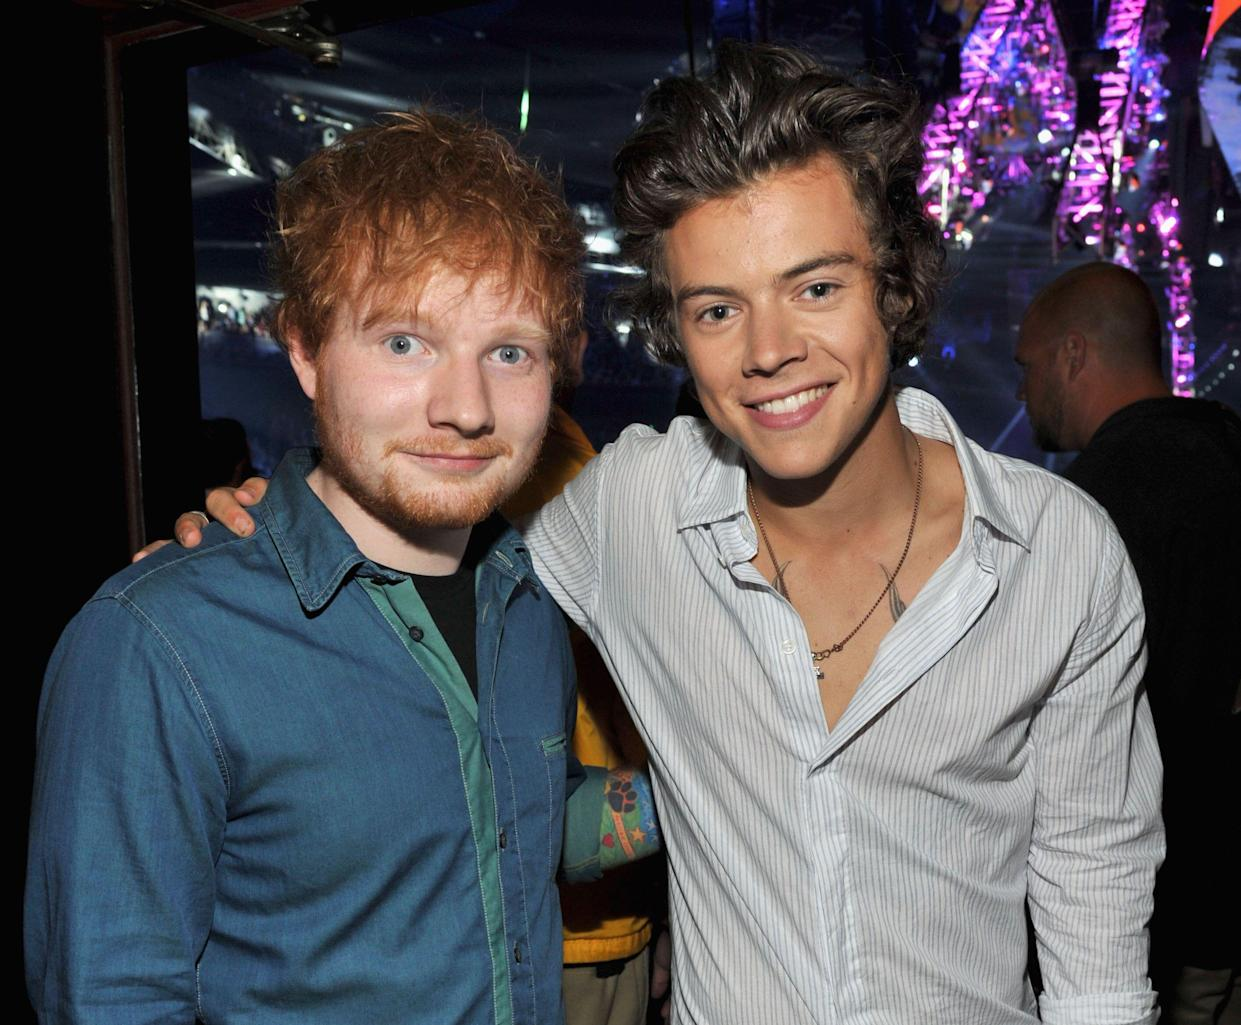 Musicians Ed Sheeran (L) and Harry Styles of One Direction attend the 2013 Teen Choice Awards at Gibson Amphitheatre on August 11, 2013 in Universal City, California. (Photo by Kevin Mazur/Fox/WireImage)